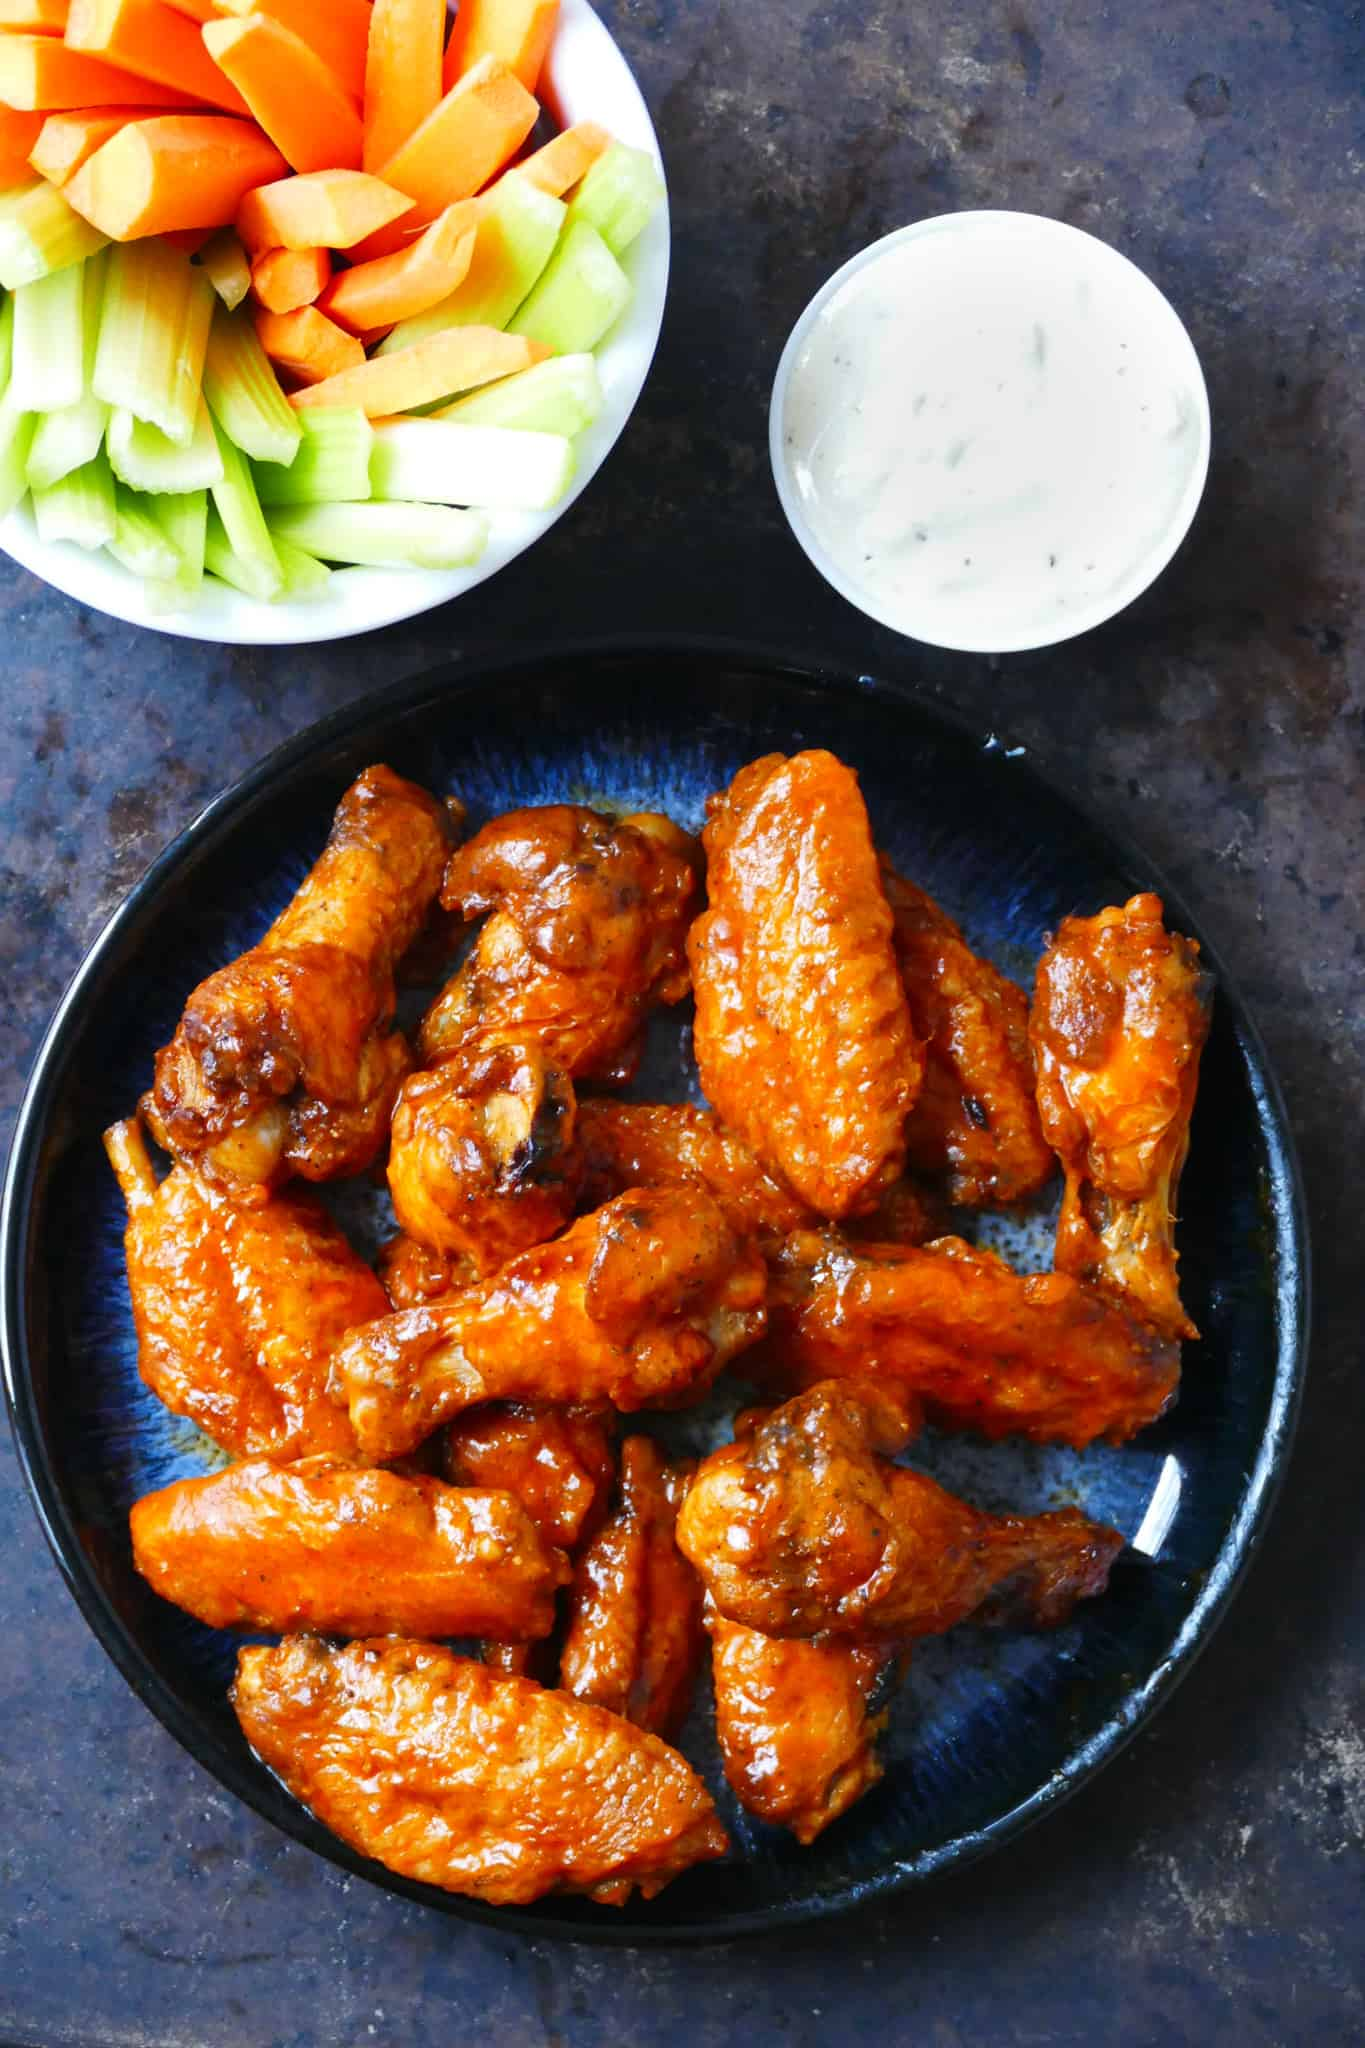 Blue plate with hot wings glistening with sauce and carrots, celery in a white bowl and ranch sauce in a bowl